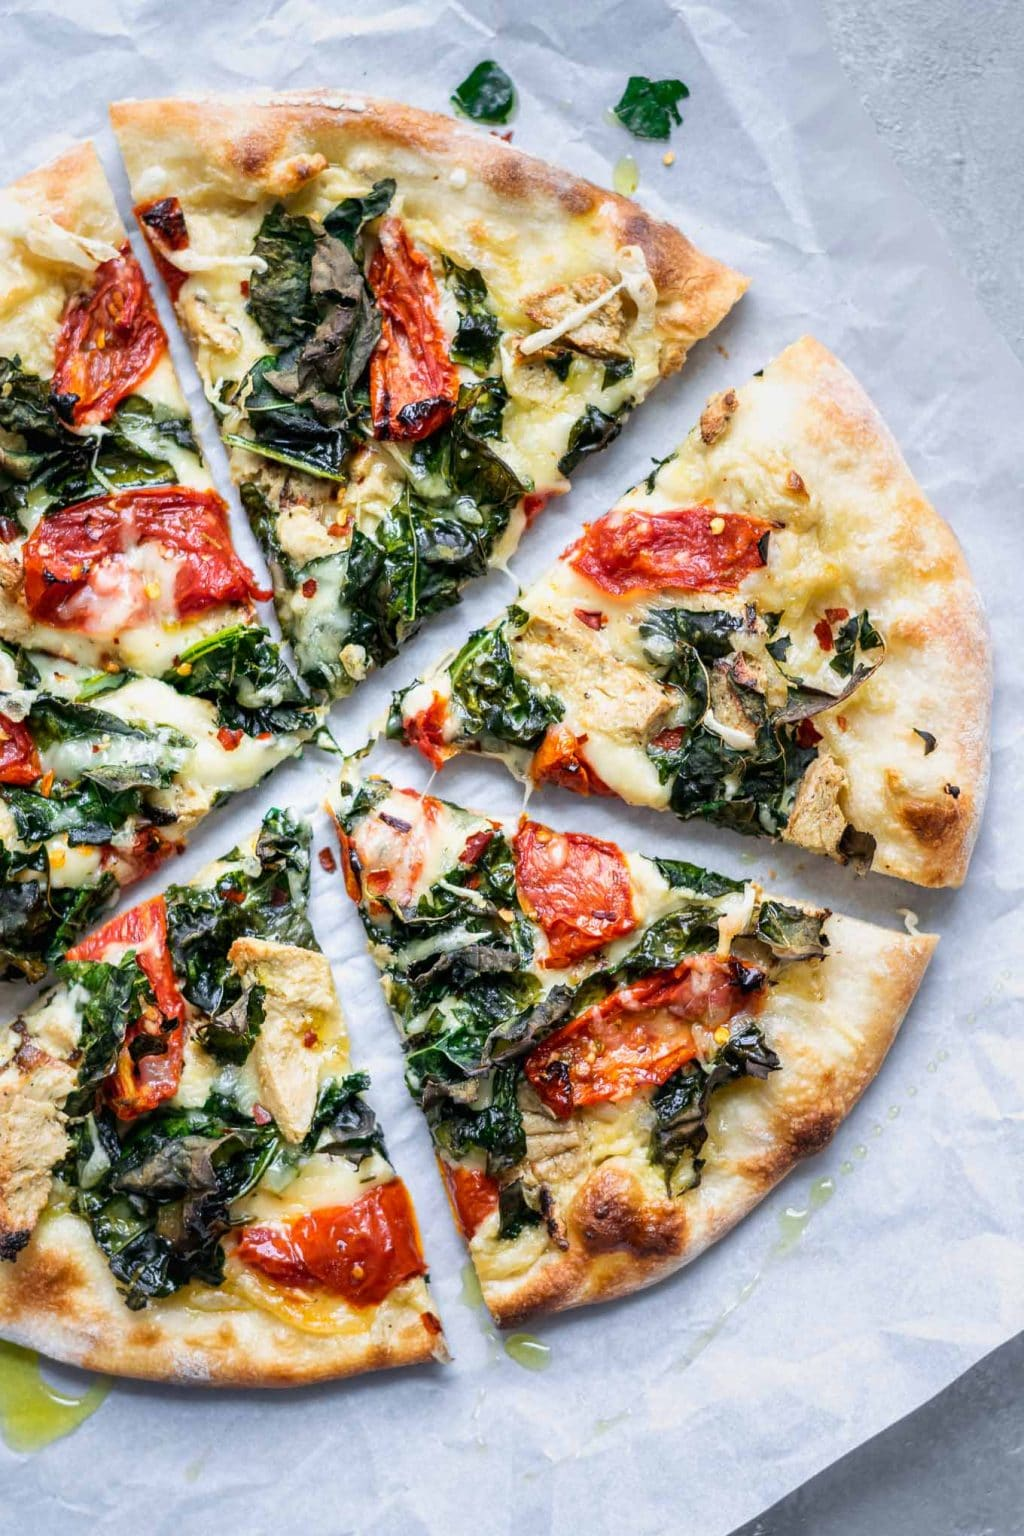 Sliced Crispy Kale, Roasted Tomato, and Vegan Chicken White Sauce Pizza